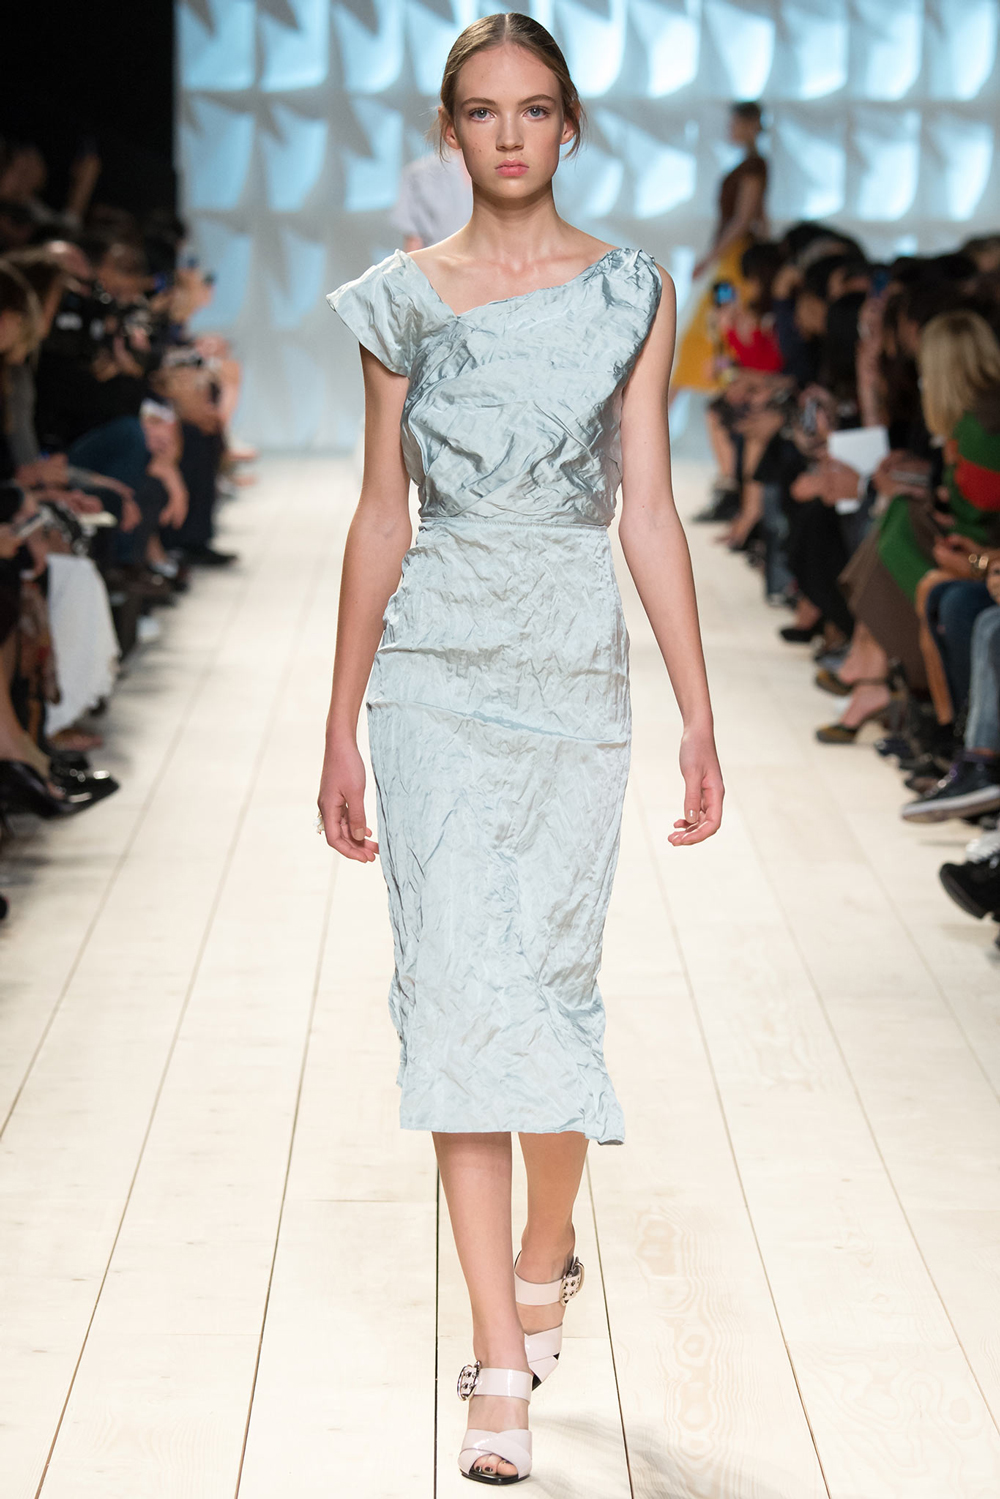 Pantone Colour Report Spring 2015 trends / aquamarine / how to wear aquamarine / outfit ideas / fashion collections S/S 2015 / Nina Ricci Spring 2015 / via fashioned by love british fashion blog